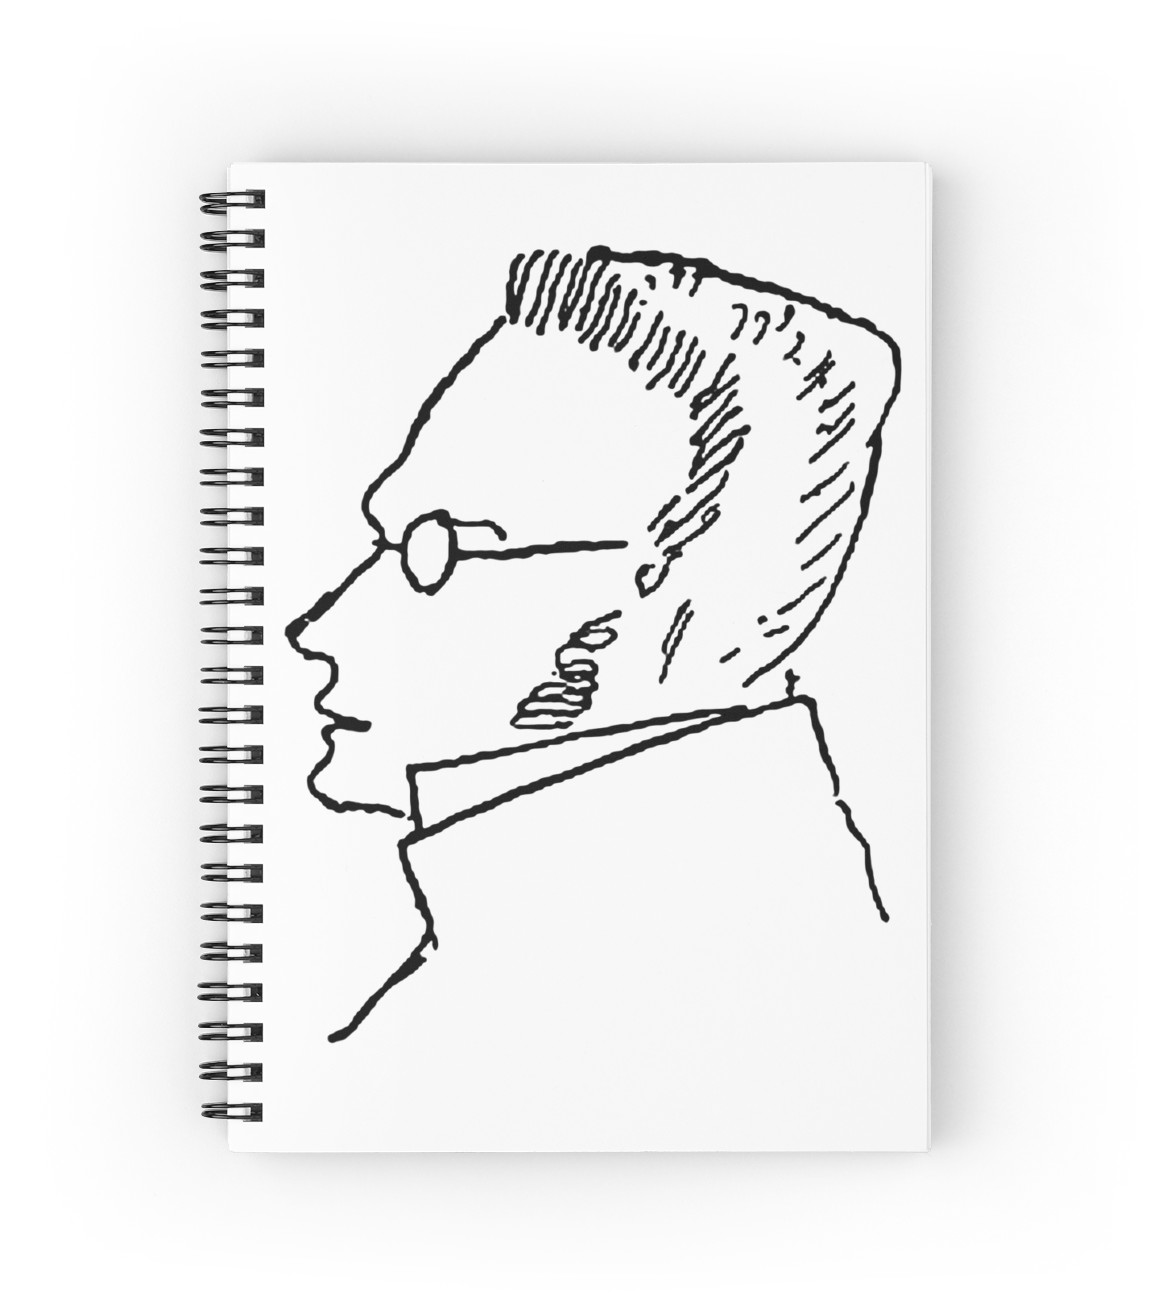 1171x1313 Max Stirner Spiral Notebooks By Nihilistmemes Redbubble